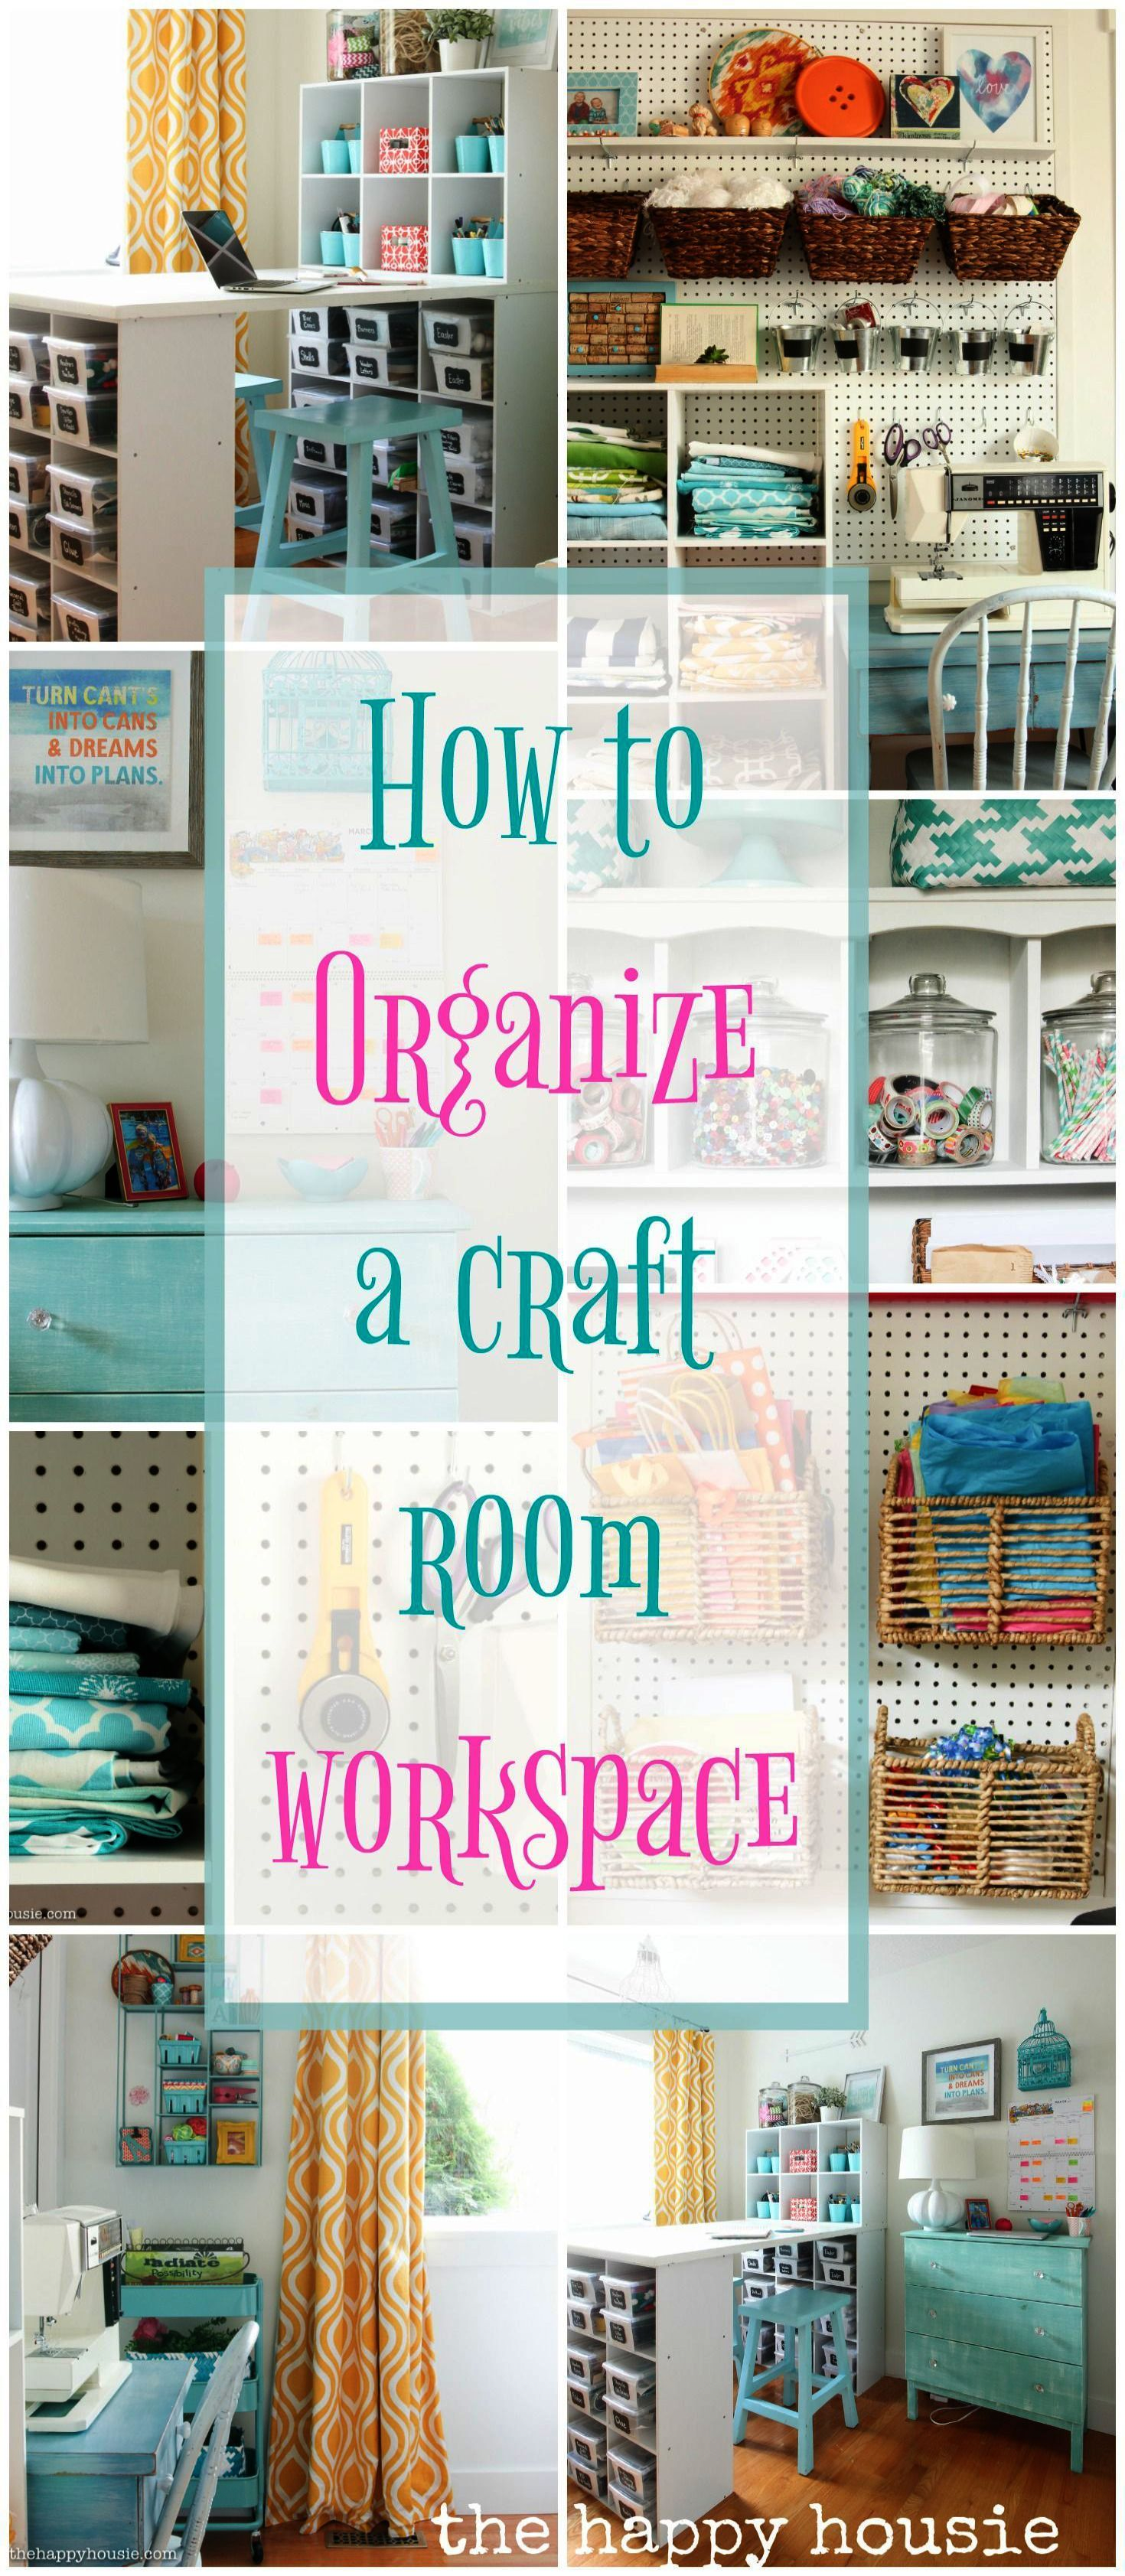 150 Shop Office Ideas In 2021 Craft Room Storage Craft Room Organization Craft Room